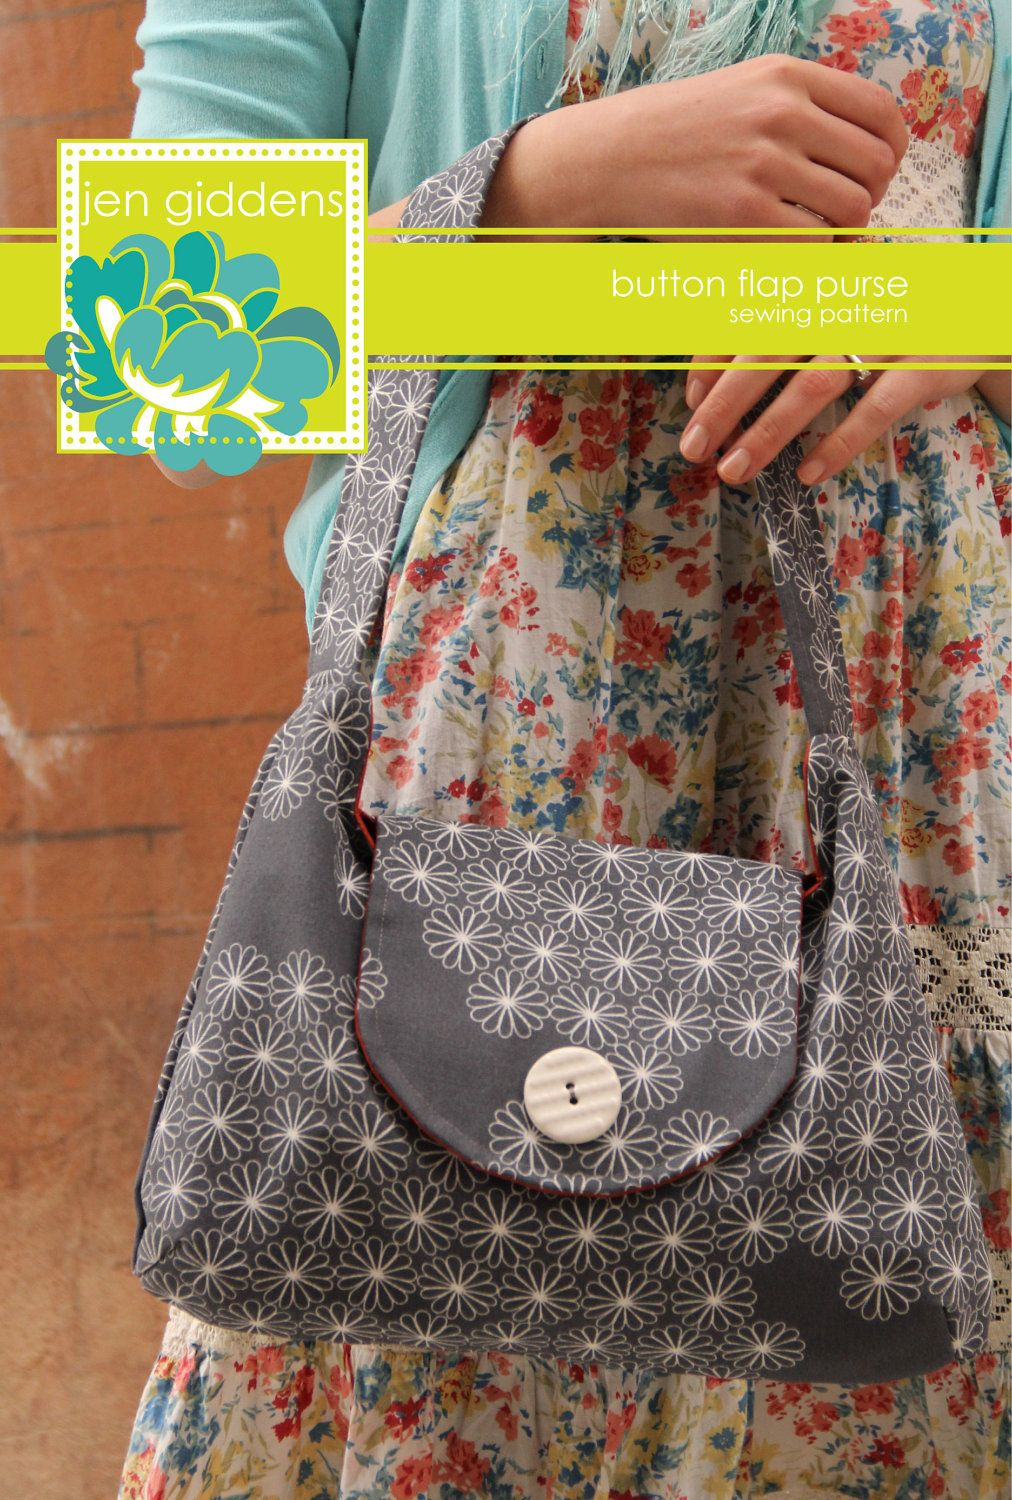 Button Flap Purse Sewing Pattern by jengiddens on Etsy